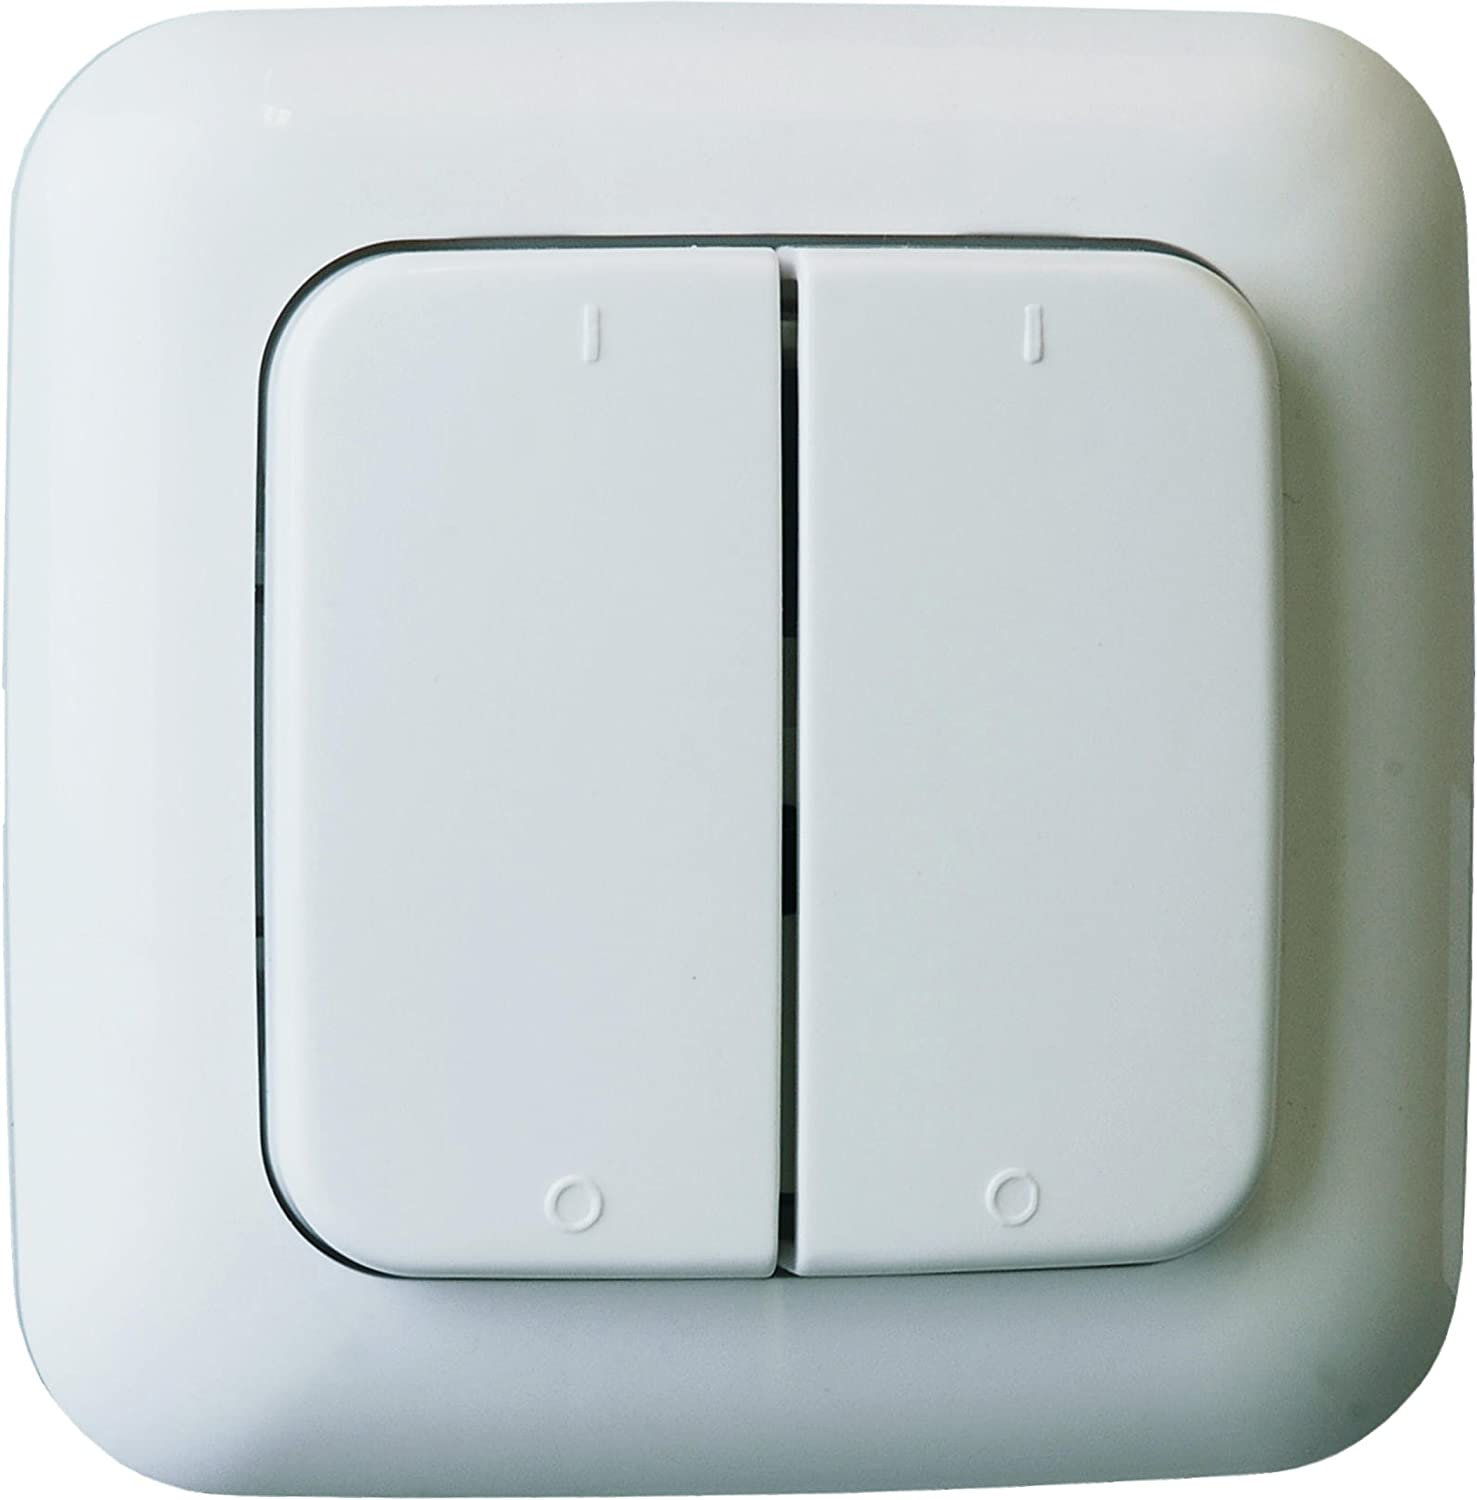 Home Easy HE843  radio double wall switch